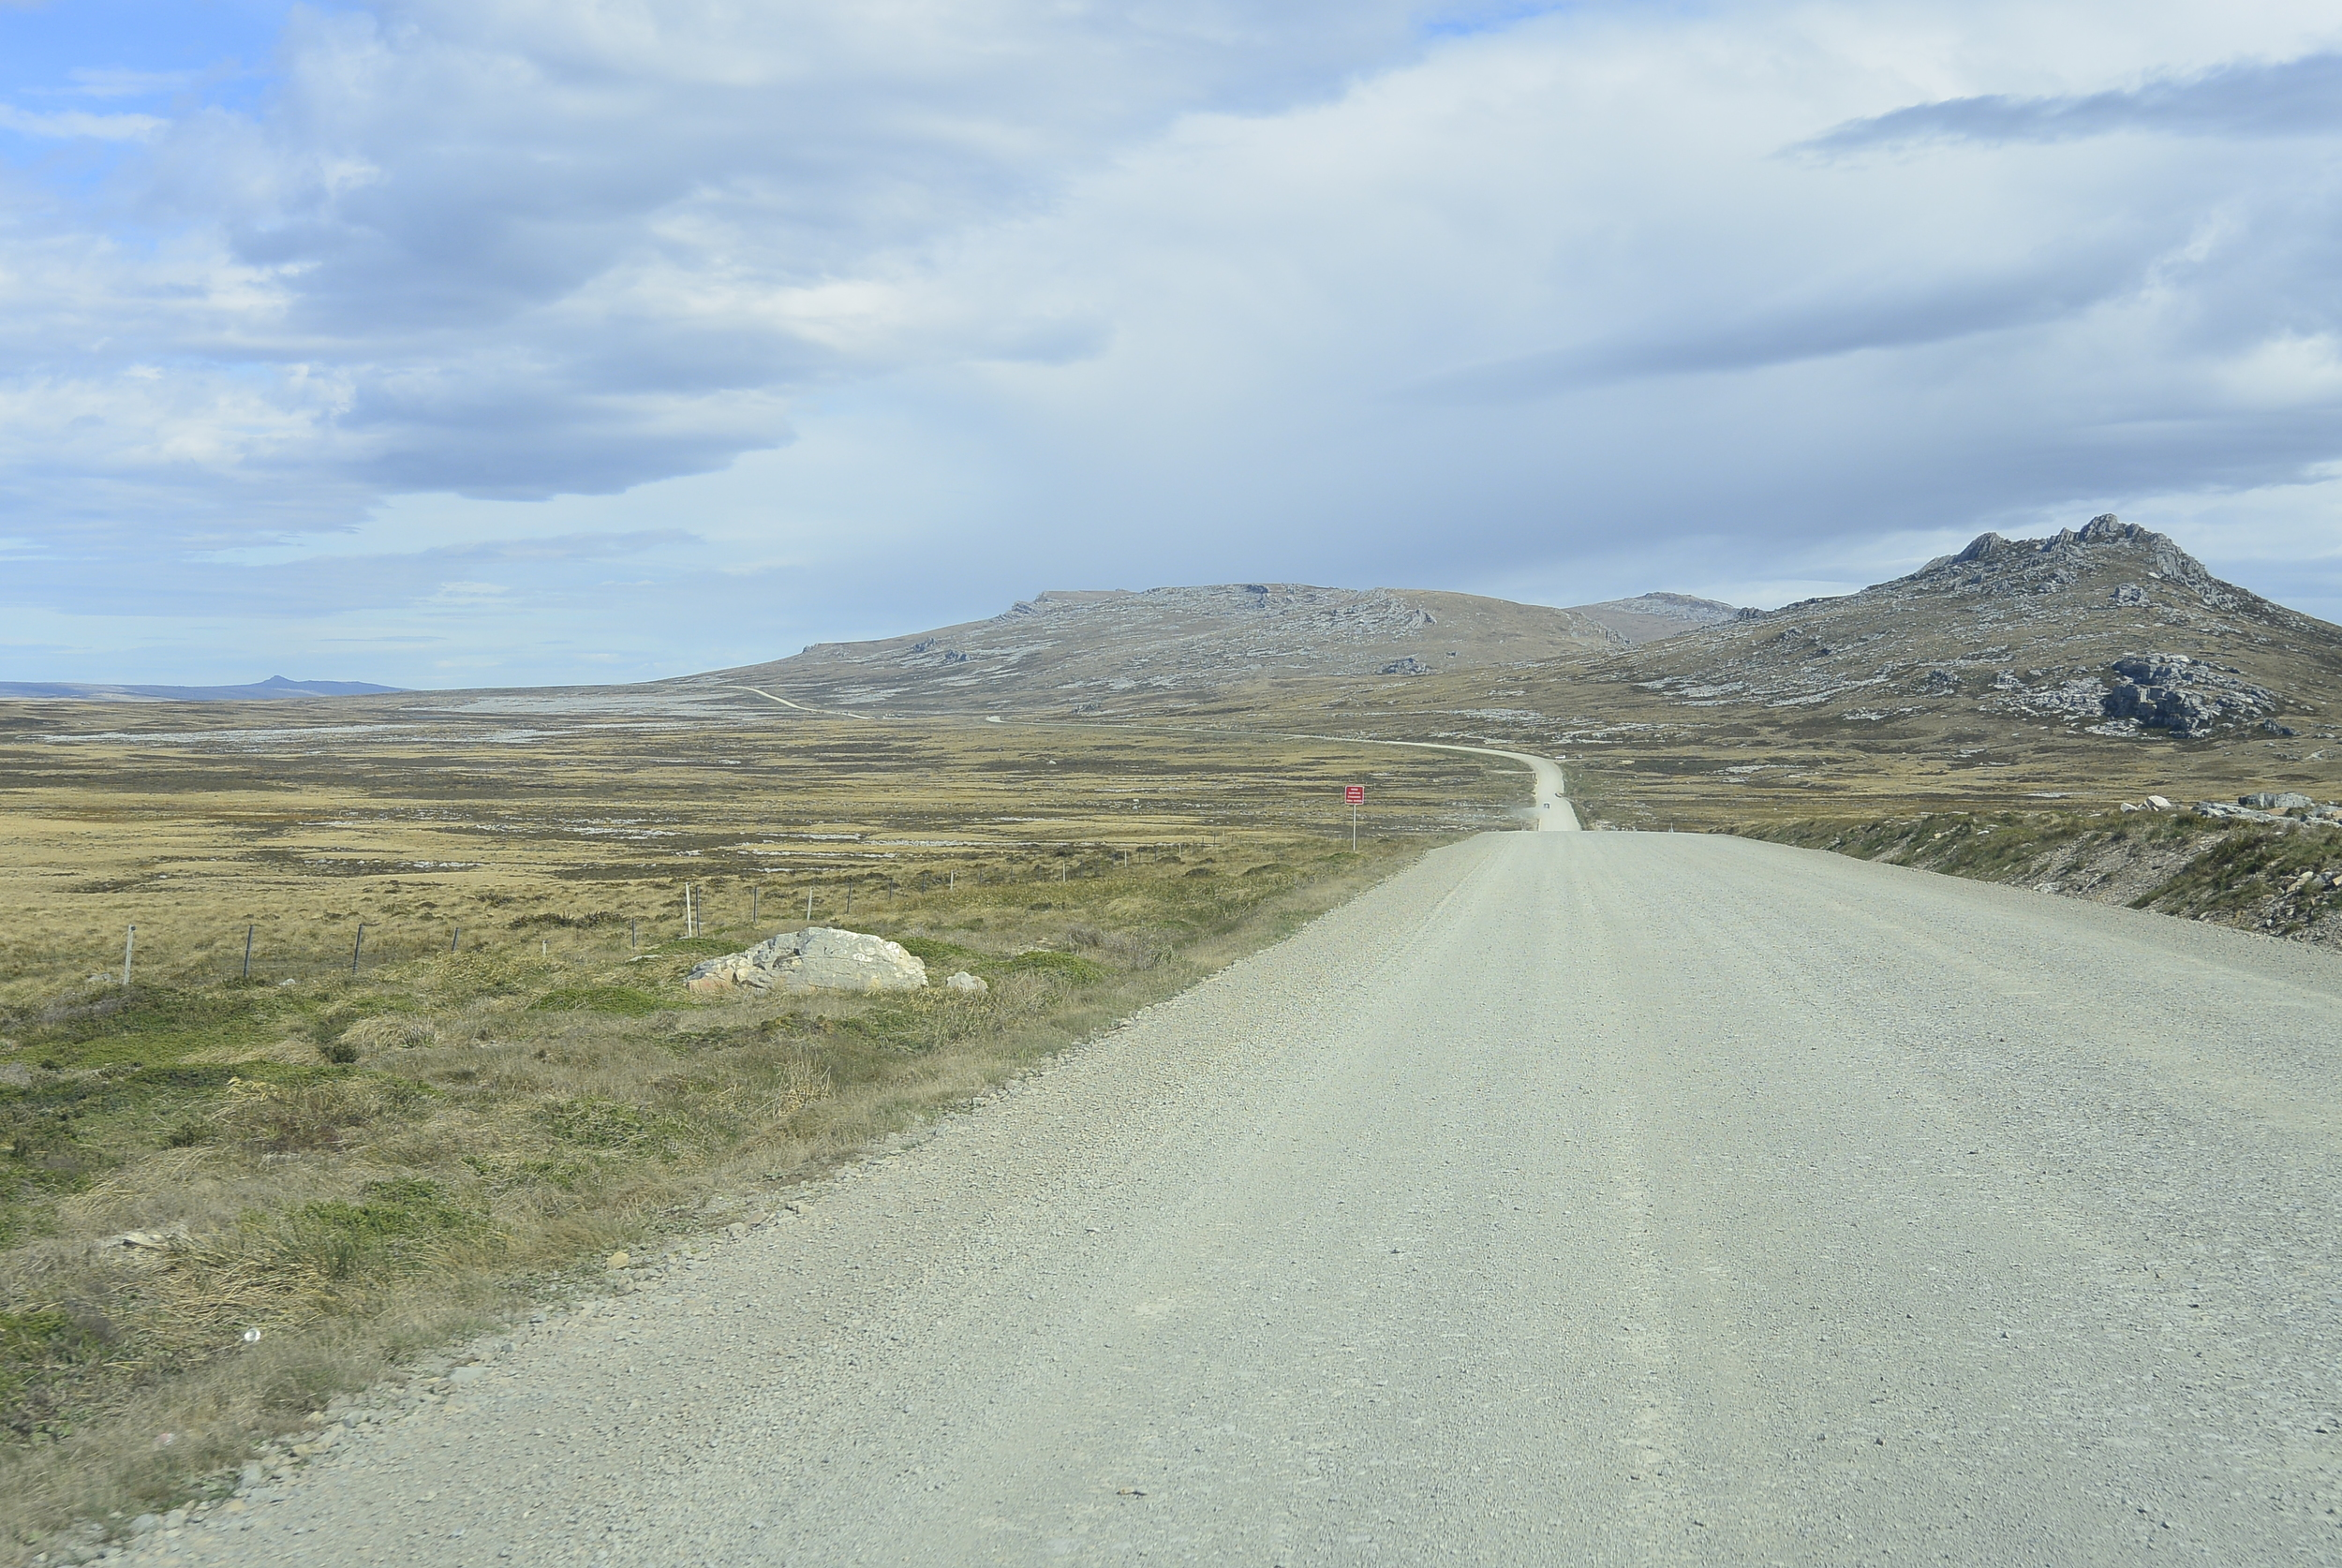 Falkland Islands Road